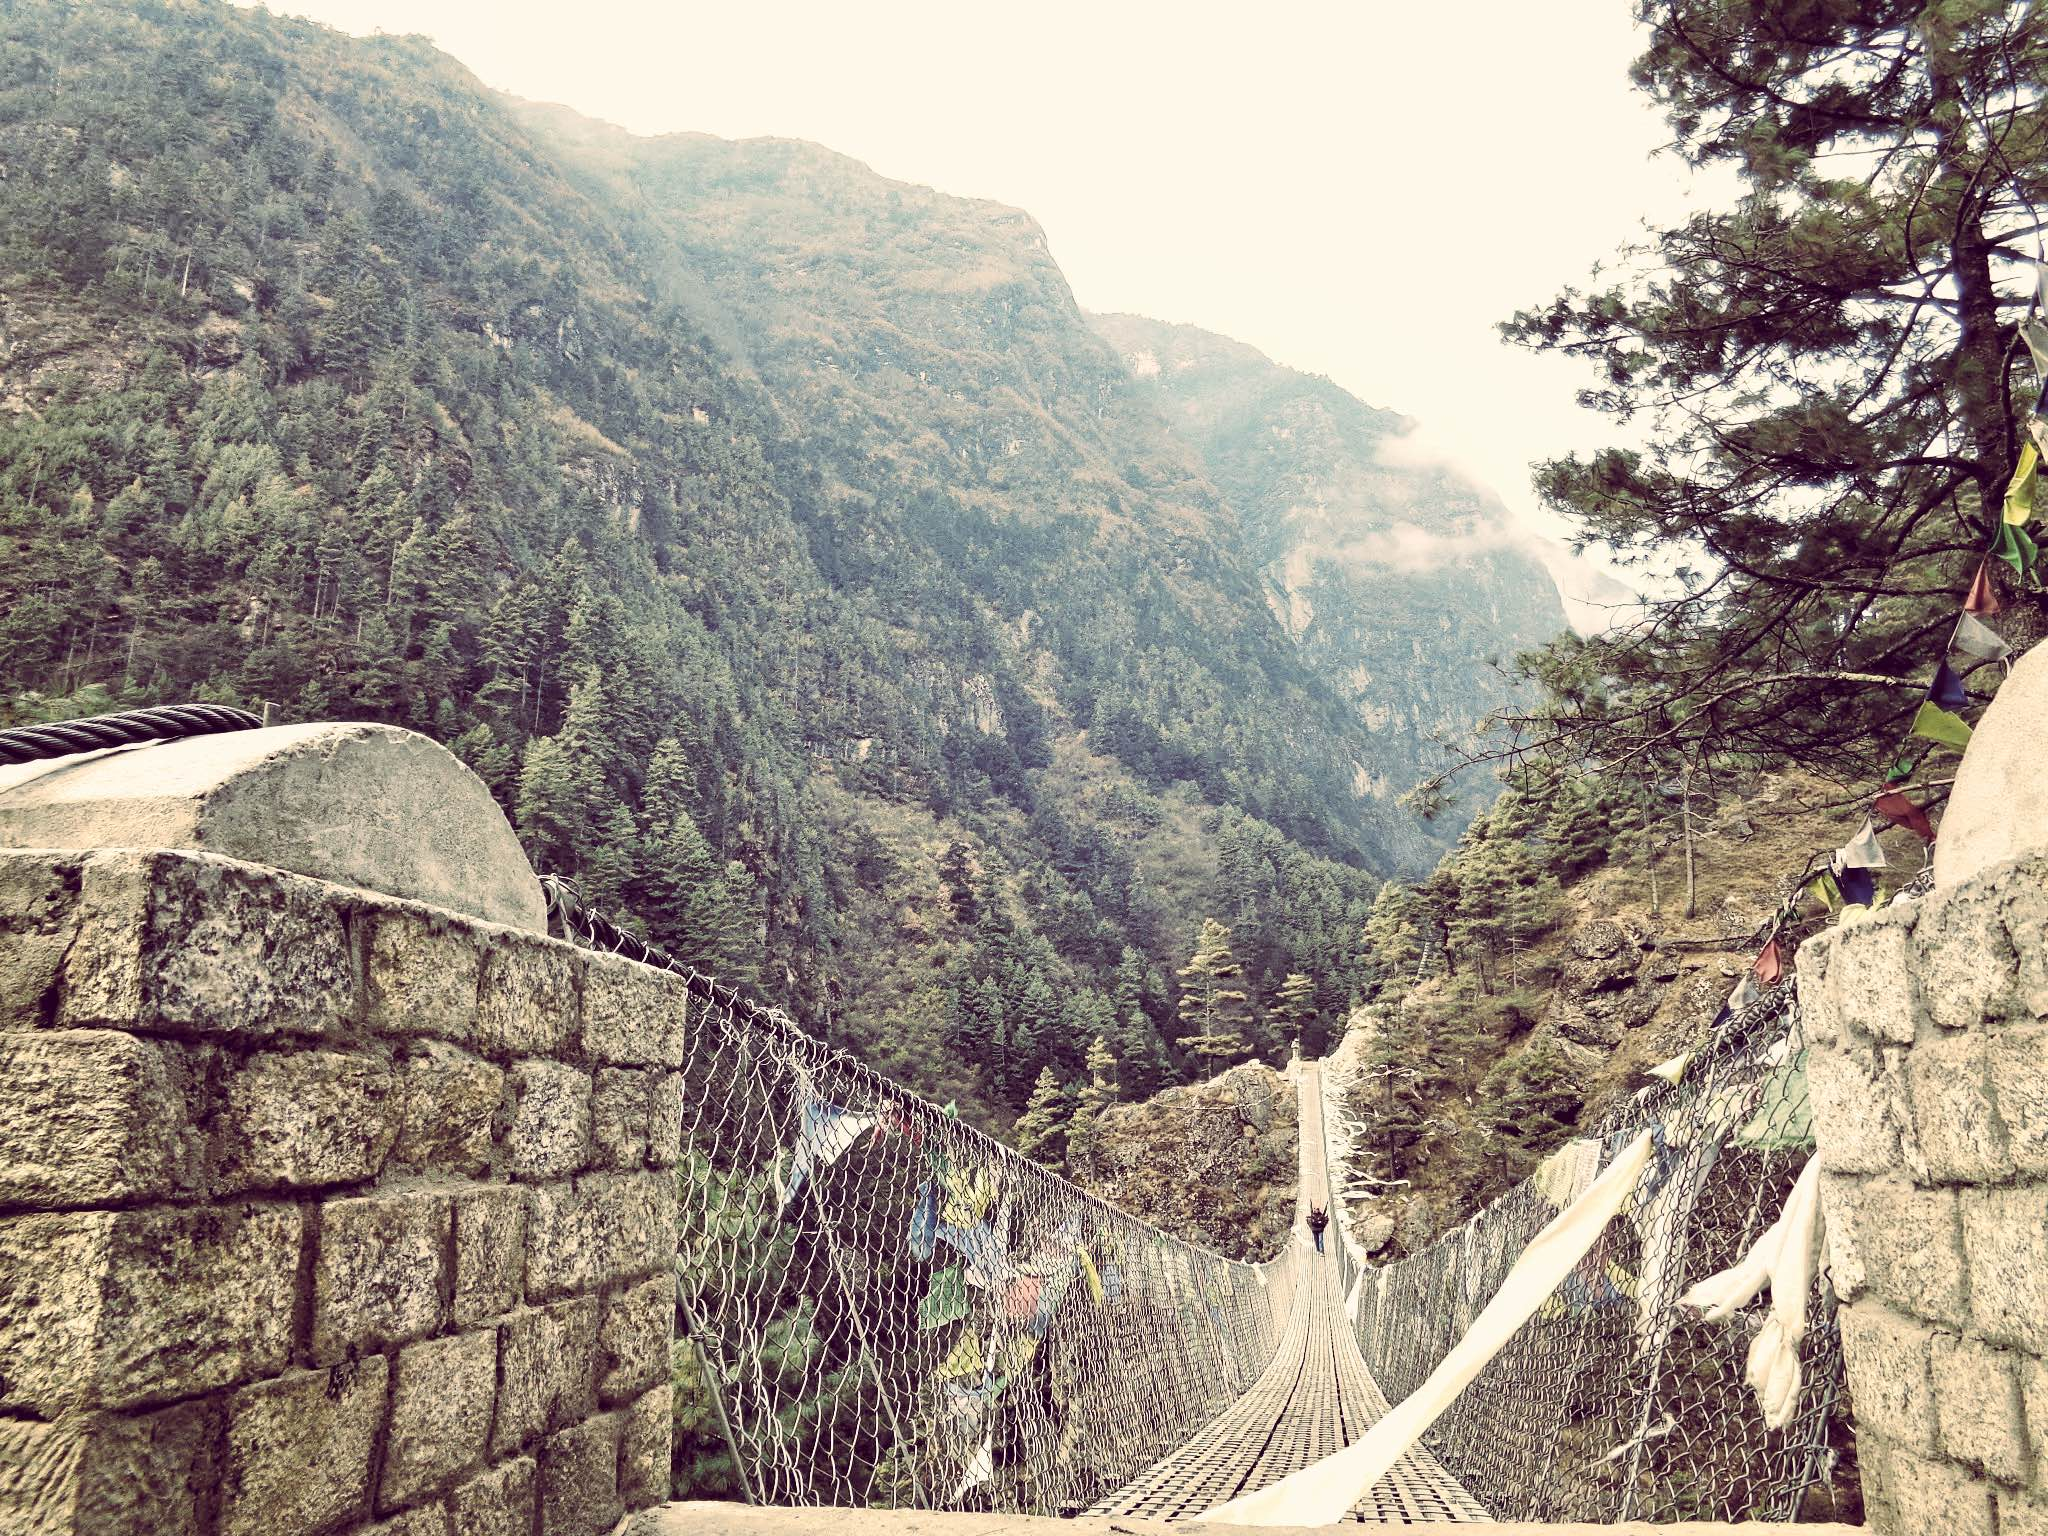 One of many bridges in Khumbu valley on Everest Base Camp Trek.